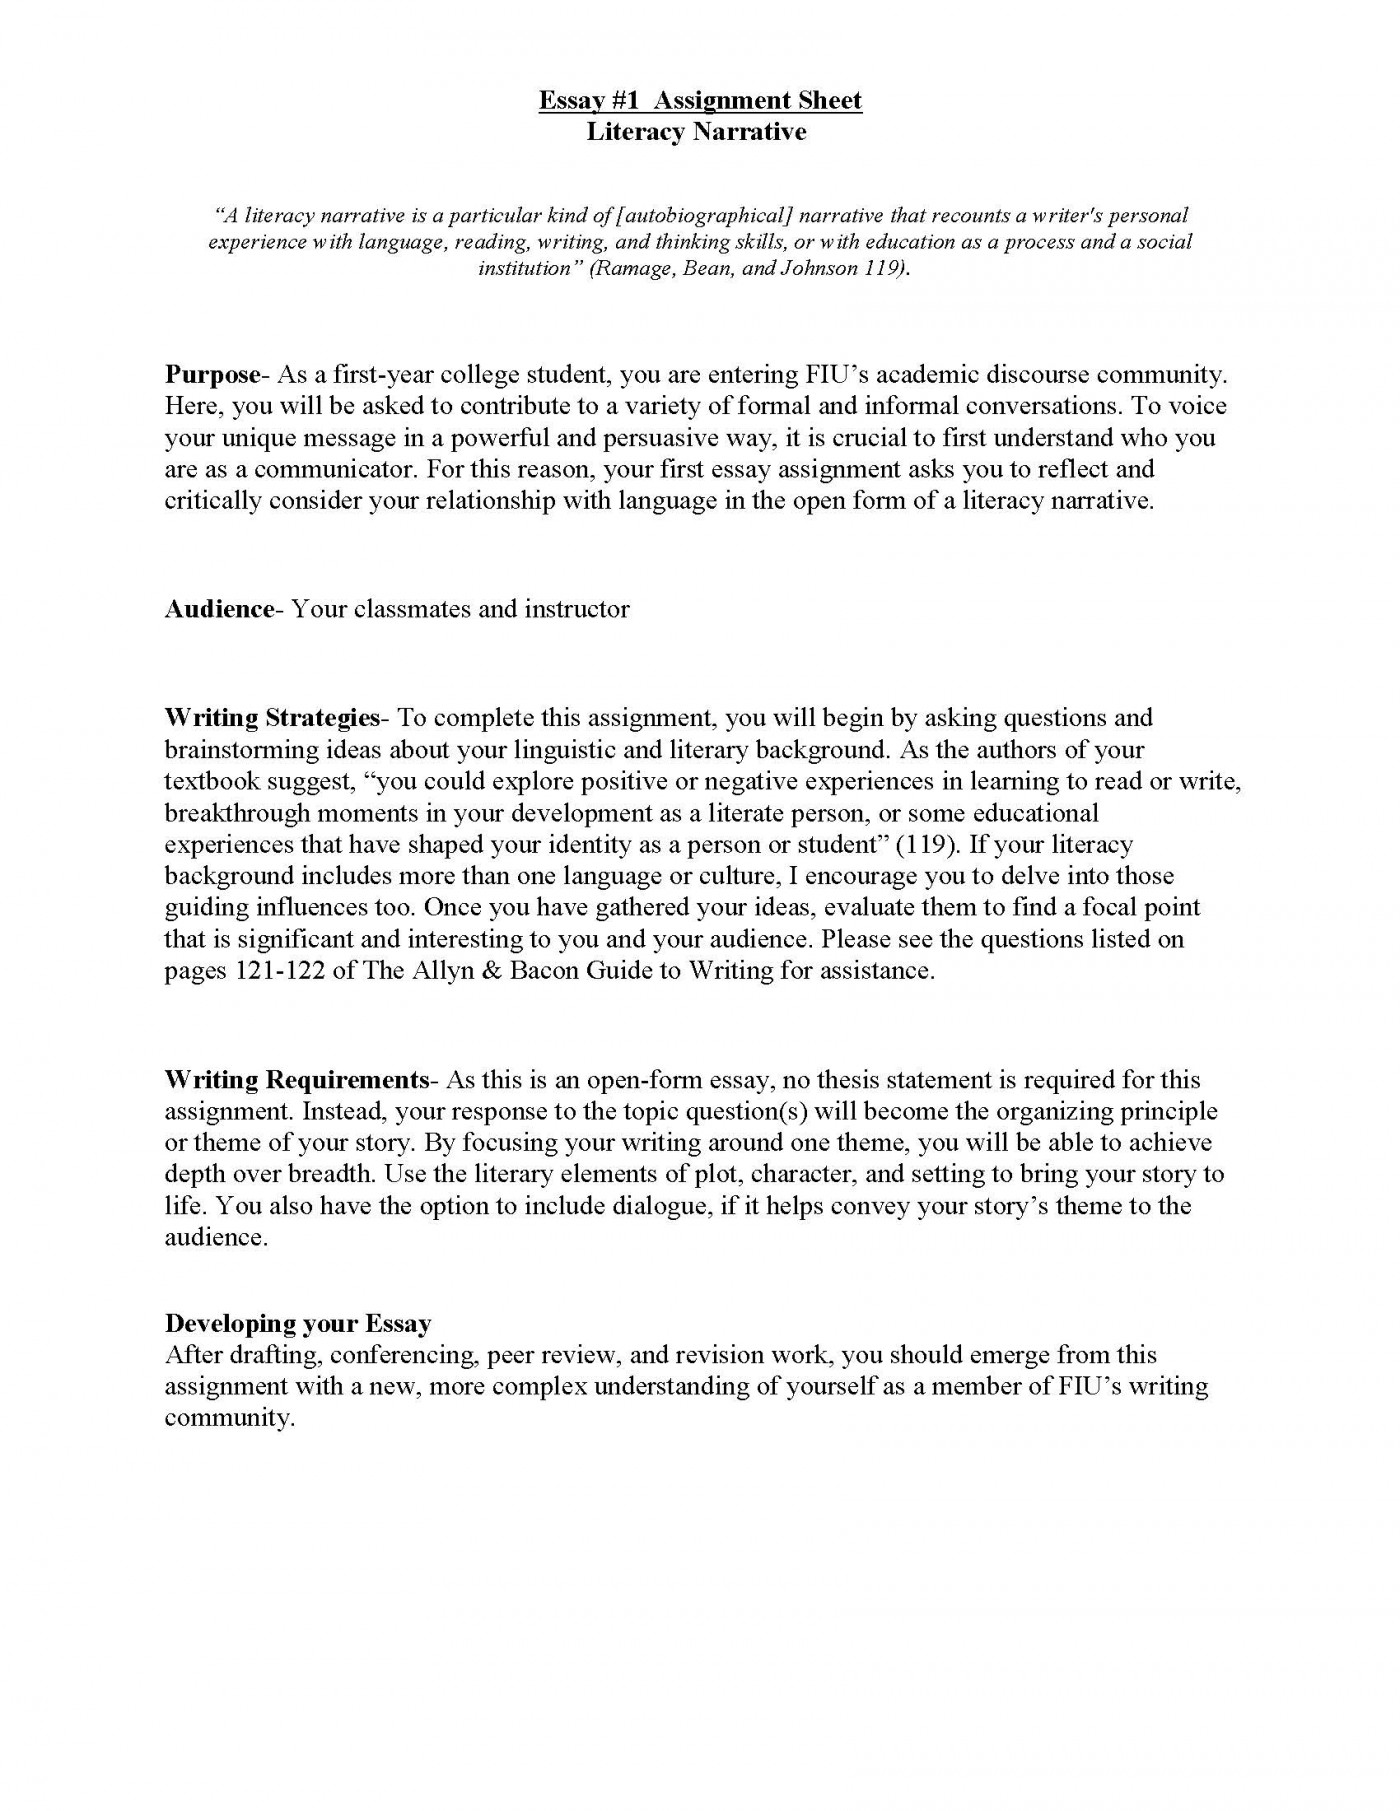 013 Essay Example Literacy Narrative Unitssignment Spring 2012 Page 1 Writing Amazing A Pdf Sample High School Personal Outline 1400